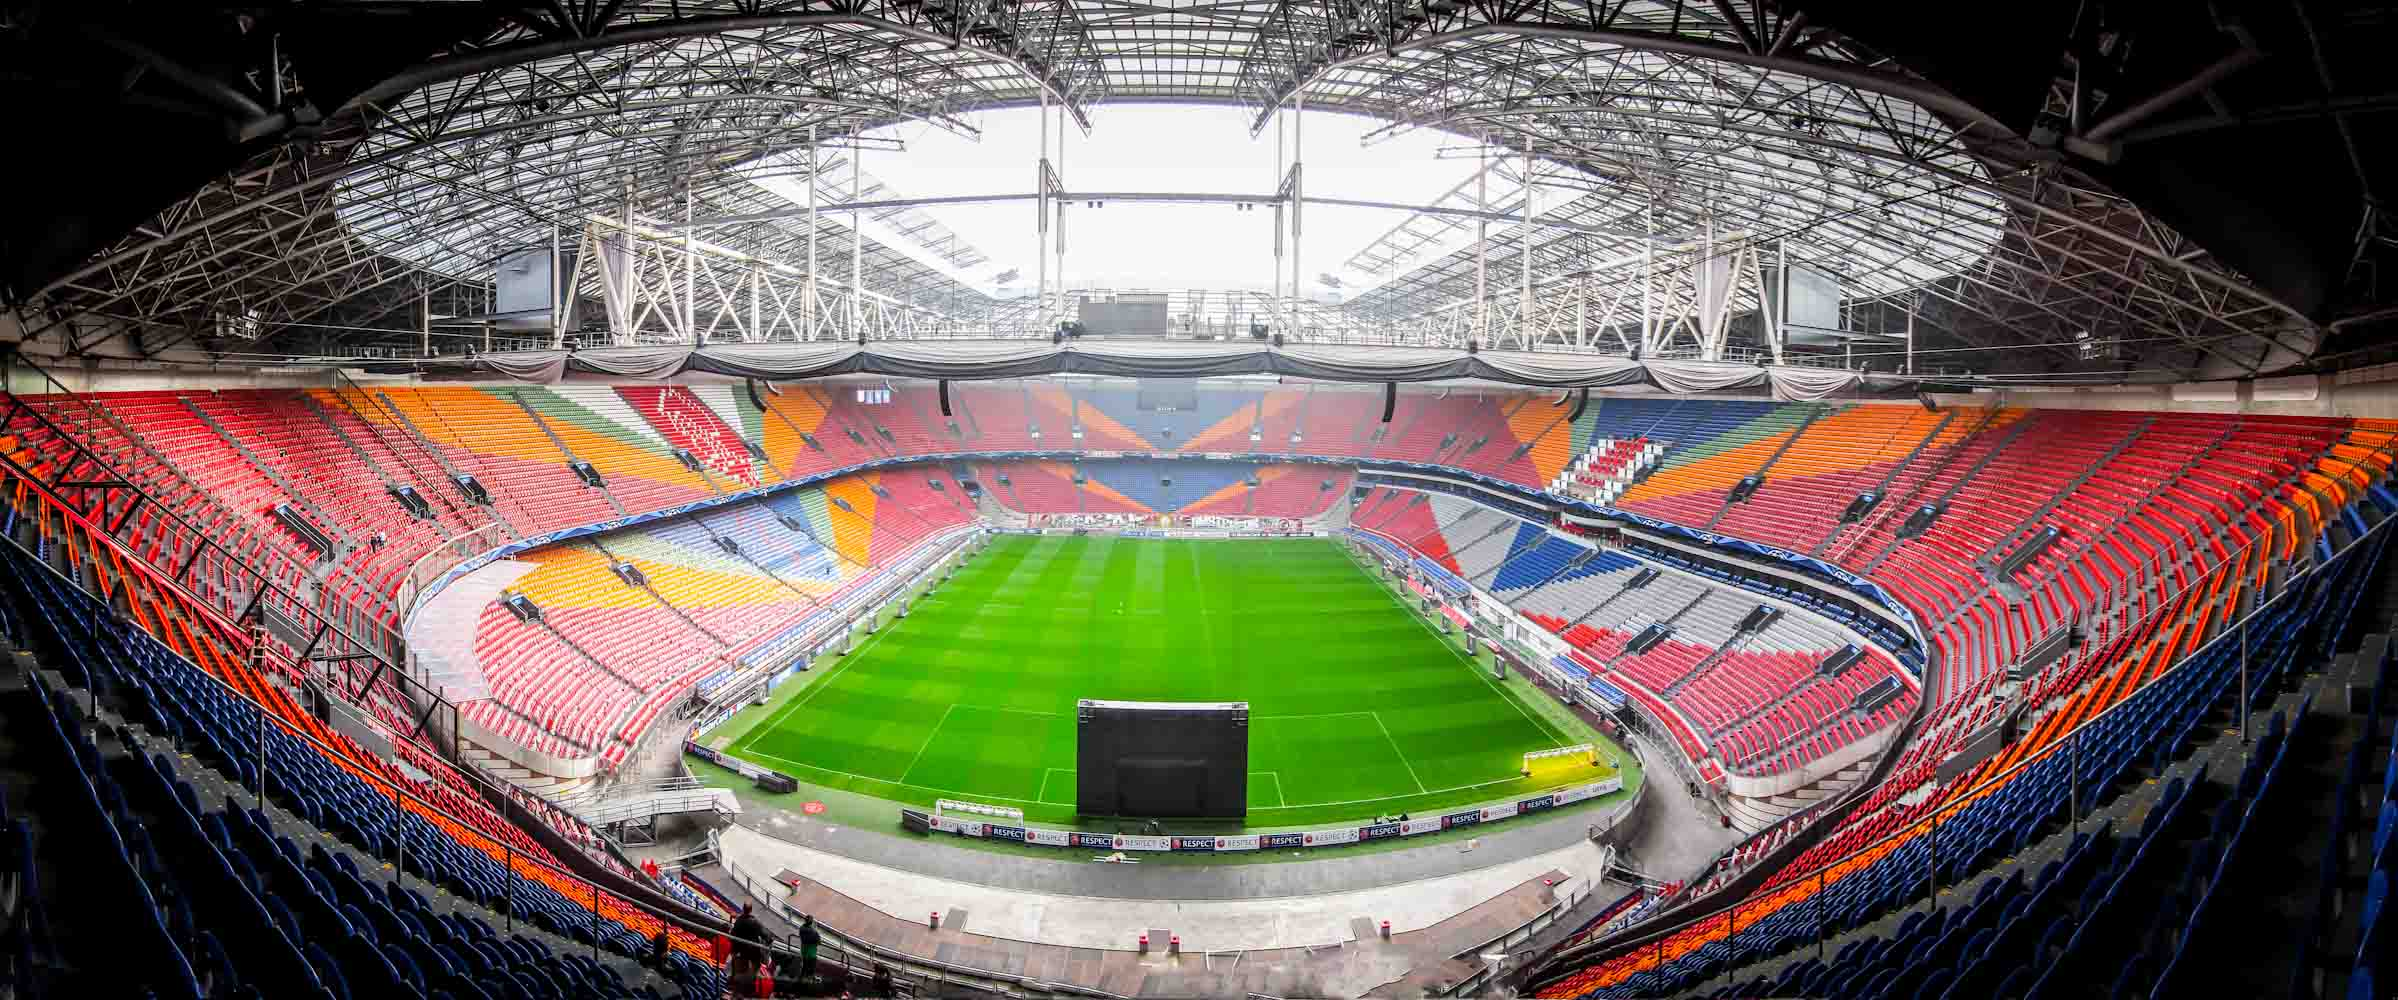 Amsterdam arena ajax stadium tom thorpe photography for Arena amsterdam